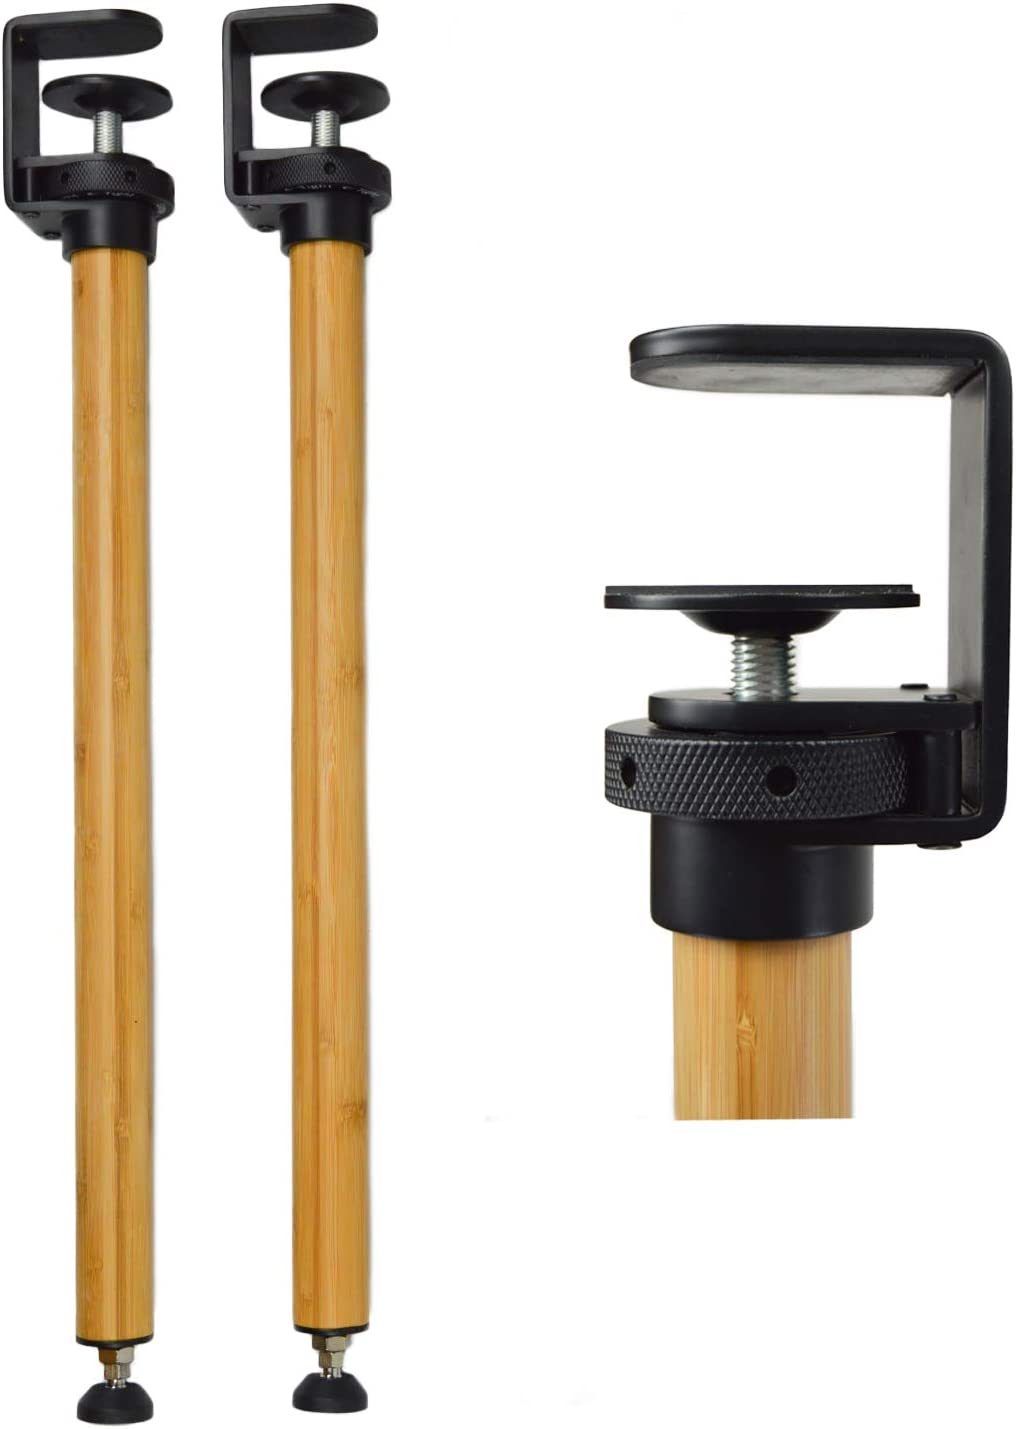 Grotta Table Legs with Metal Clamp & Wood Bamboo Leg   28-30 inch Adjustable   for Desk Bench Dining & End Table   Mid Century Modern Industrial Furniture   Hairpin & Pipe Legs Alternative  Set of 2